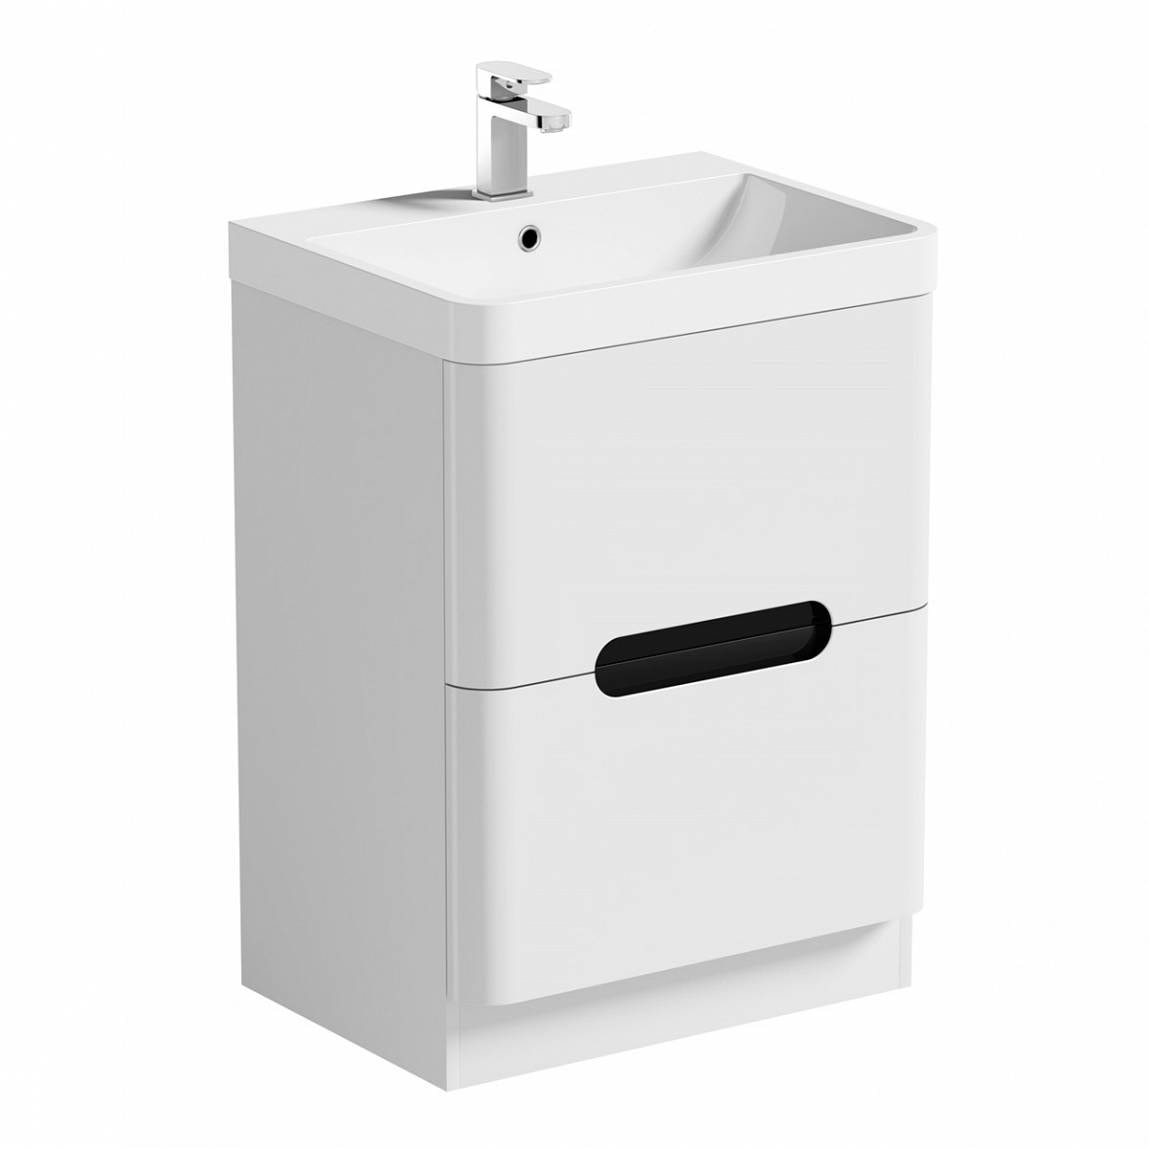 Mode Ellis select essen vanity drawer unit and basin 600mm